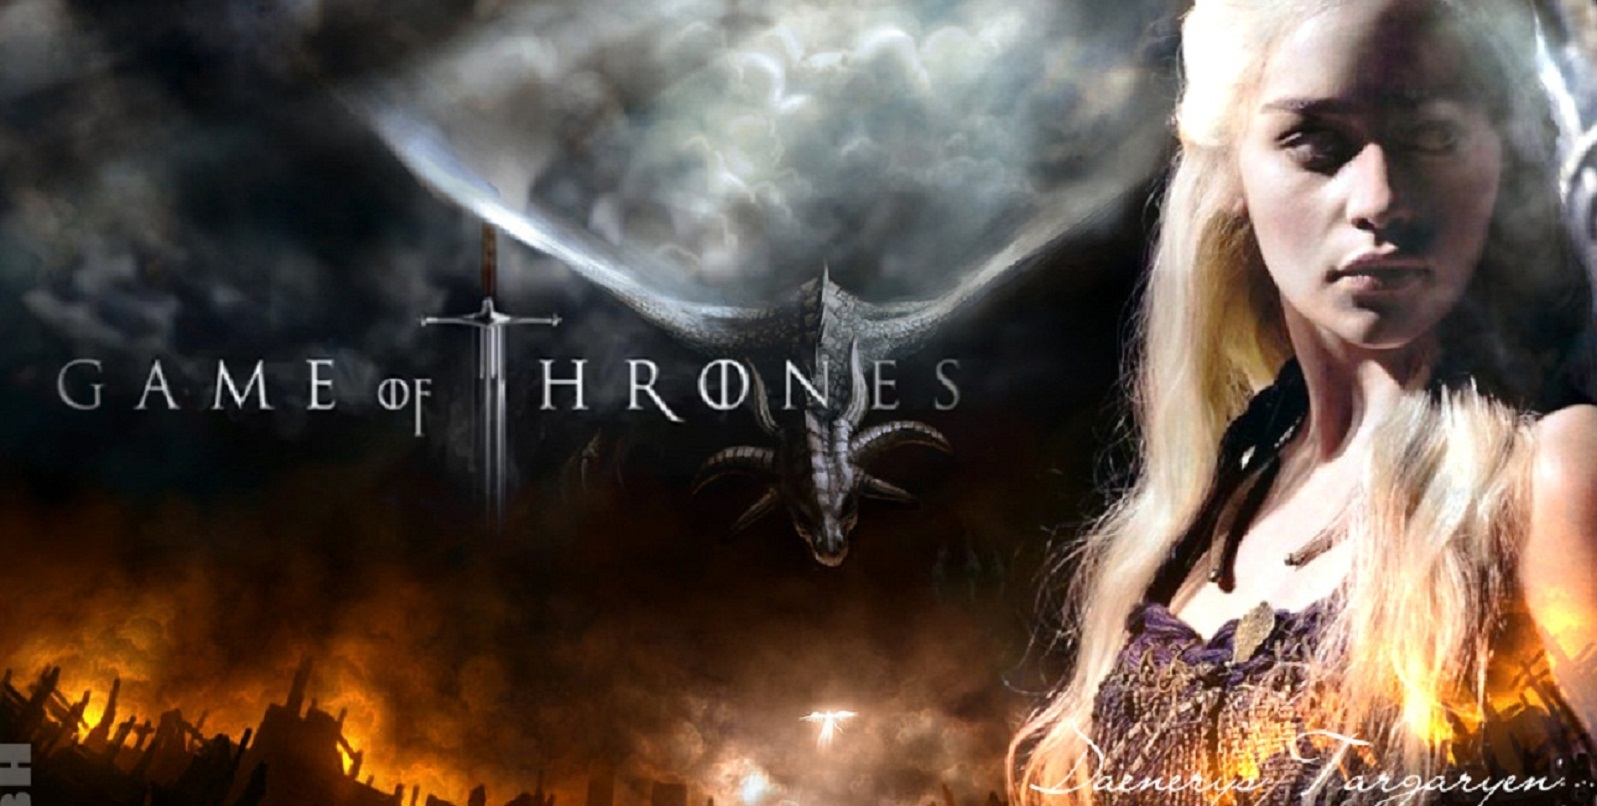 Game Of Thrones Daenerys Wallpaper: Game Of Thrones Daenerys Wallpaper